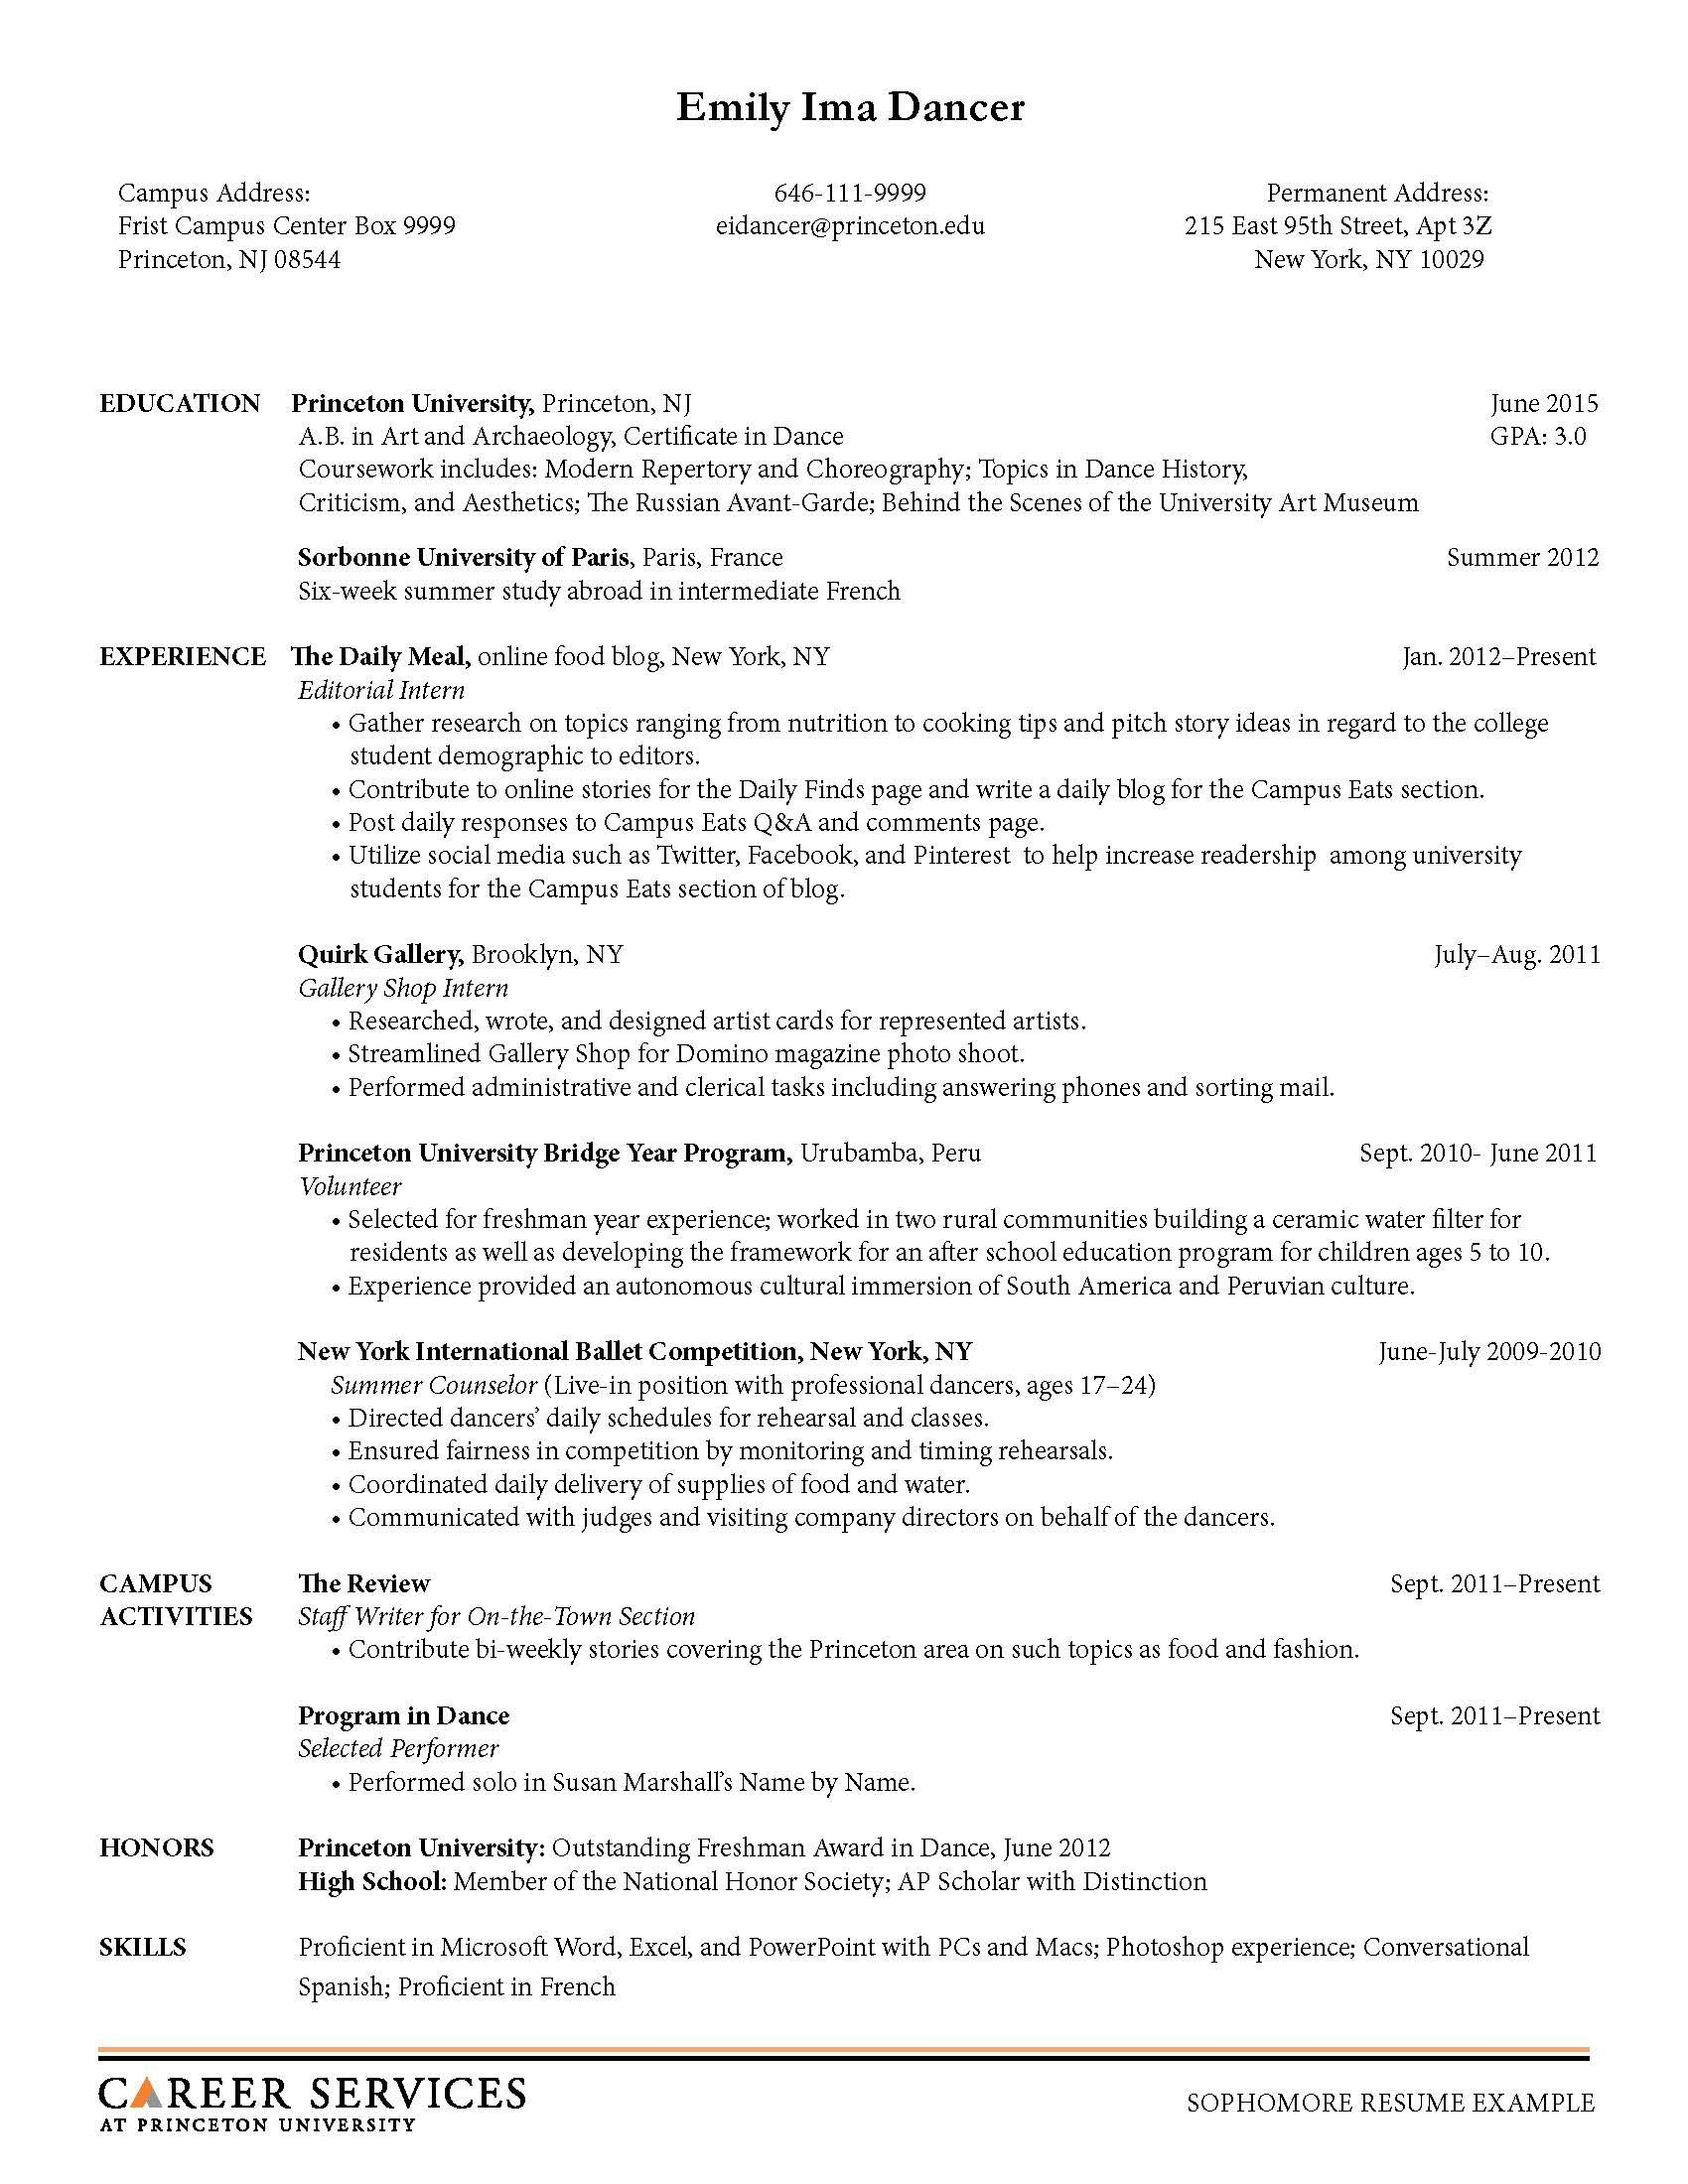 Picnictoimpeachus  Sweet Sample Resume Resume And Career On Pinterest With Fair Resume For Jobs With No Experience Besides Optimal Resume Wyotech Furthermore Resume Overview With Easy On The Eye Spanish Teacher Resume Also Teachers Aide Resume In Addition Make Your Resume Stand Out And Free Resume Wizard As Well As Scientist Resume Additionally Free Simple Resume Templates From Pinterestcom With Picnictoimpeachus  Fair Sample Resume Resume And Career On Pinterest With Easy On The Eye Resume For Jobs With No Experience Besides Optimal Resume Wyotech Furthermore Resume Overview And Sweet Spanish Teacher Resume Also Teachers Aide Resume In Addition Make Your Resume Stand Out From Pinterestcom